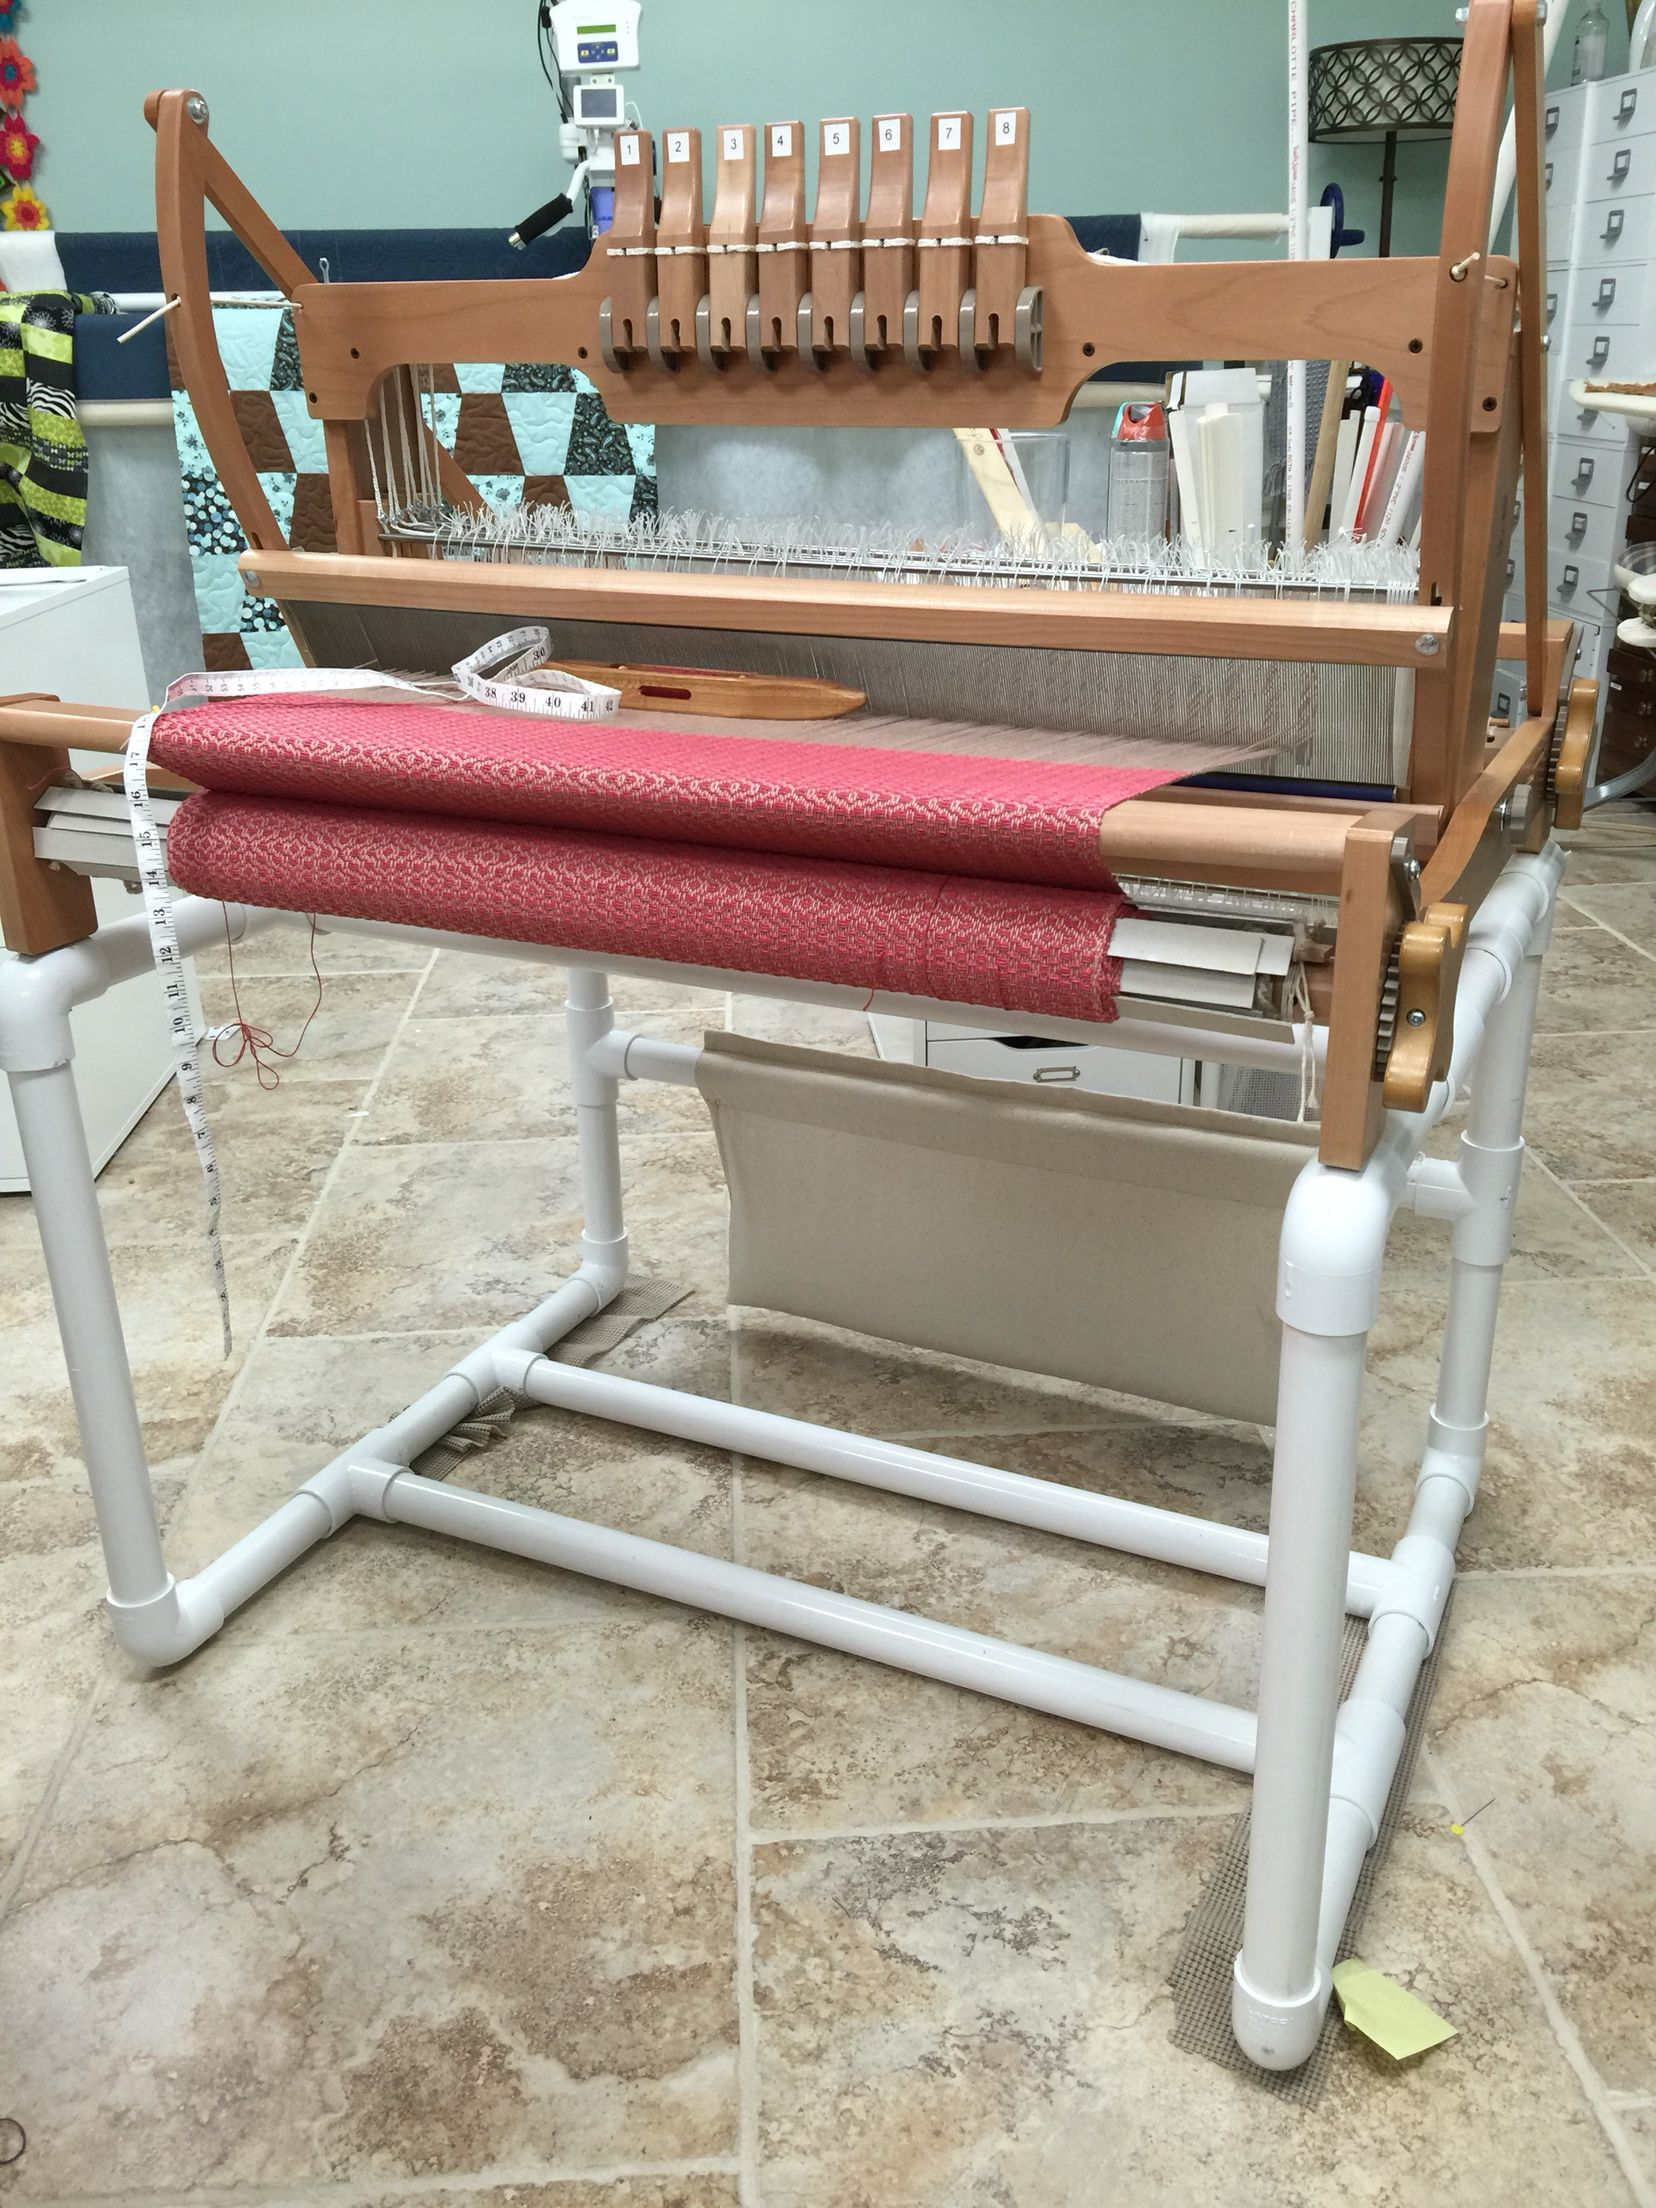 Ashford Table Loom Stand I Made With Pvc Table Loom Stand In 2018